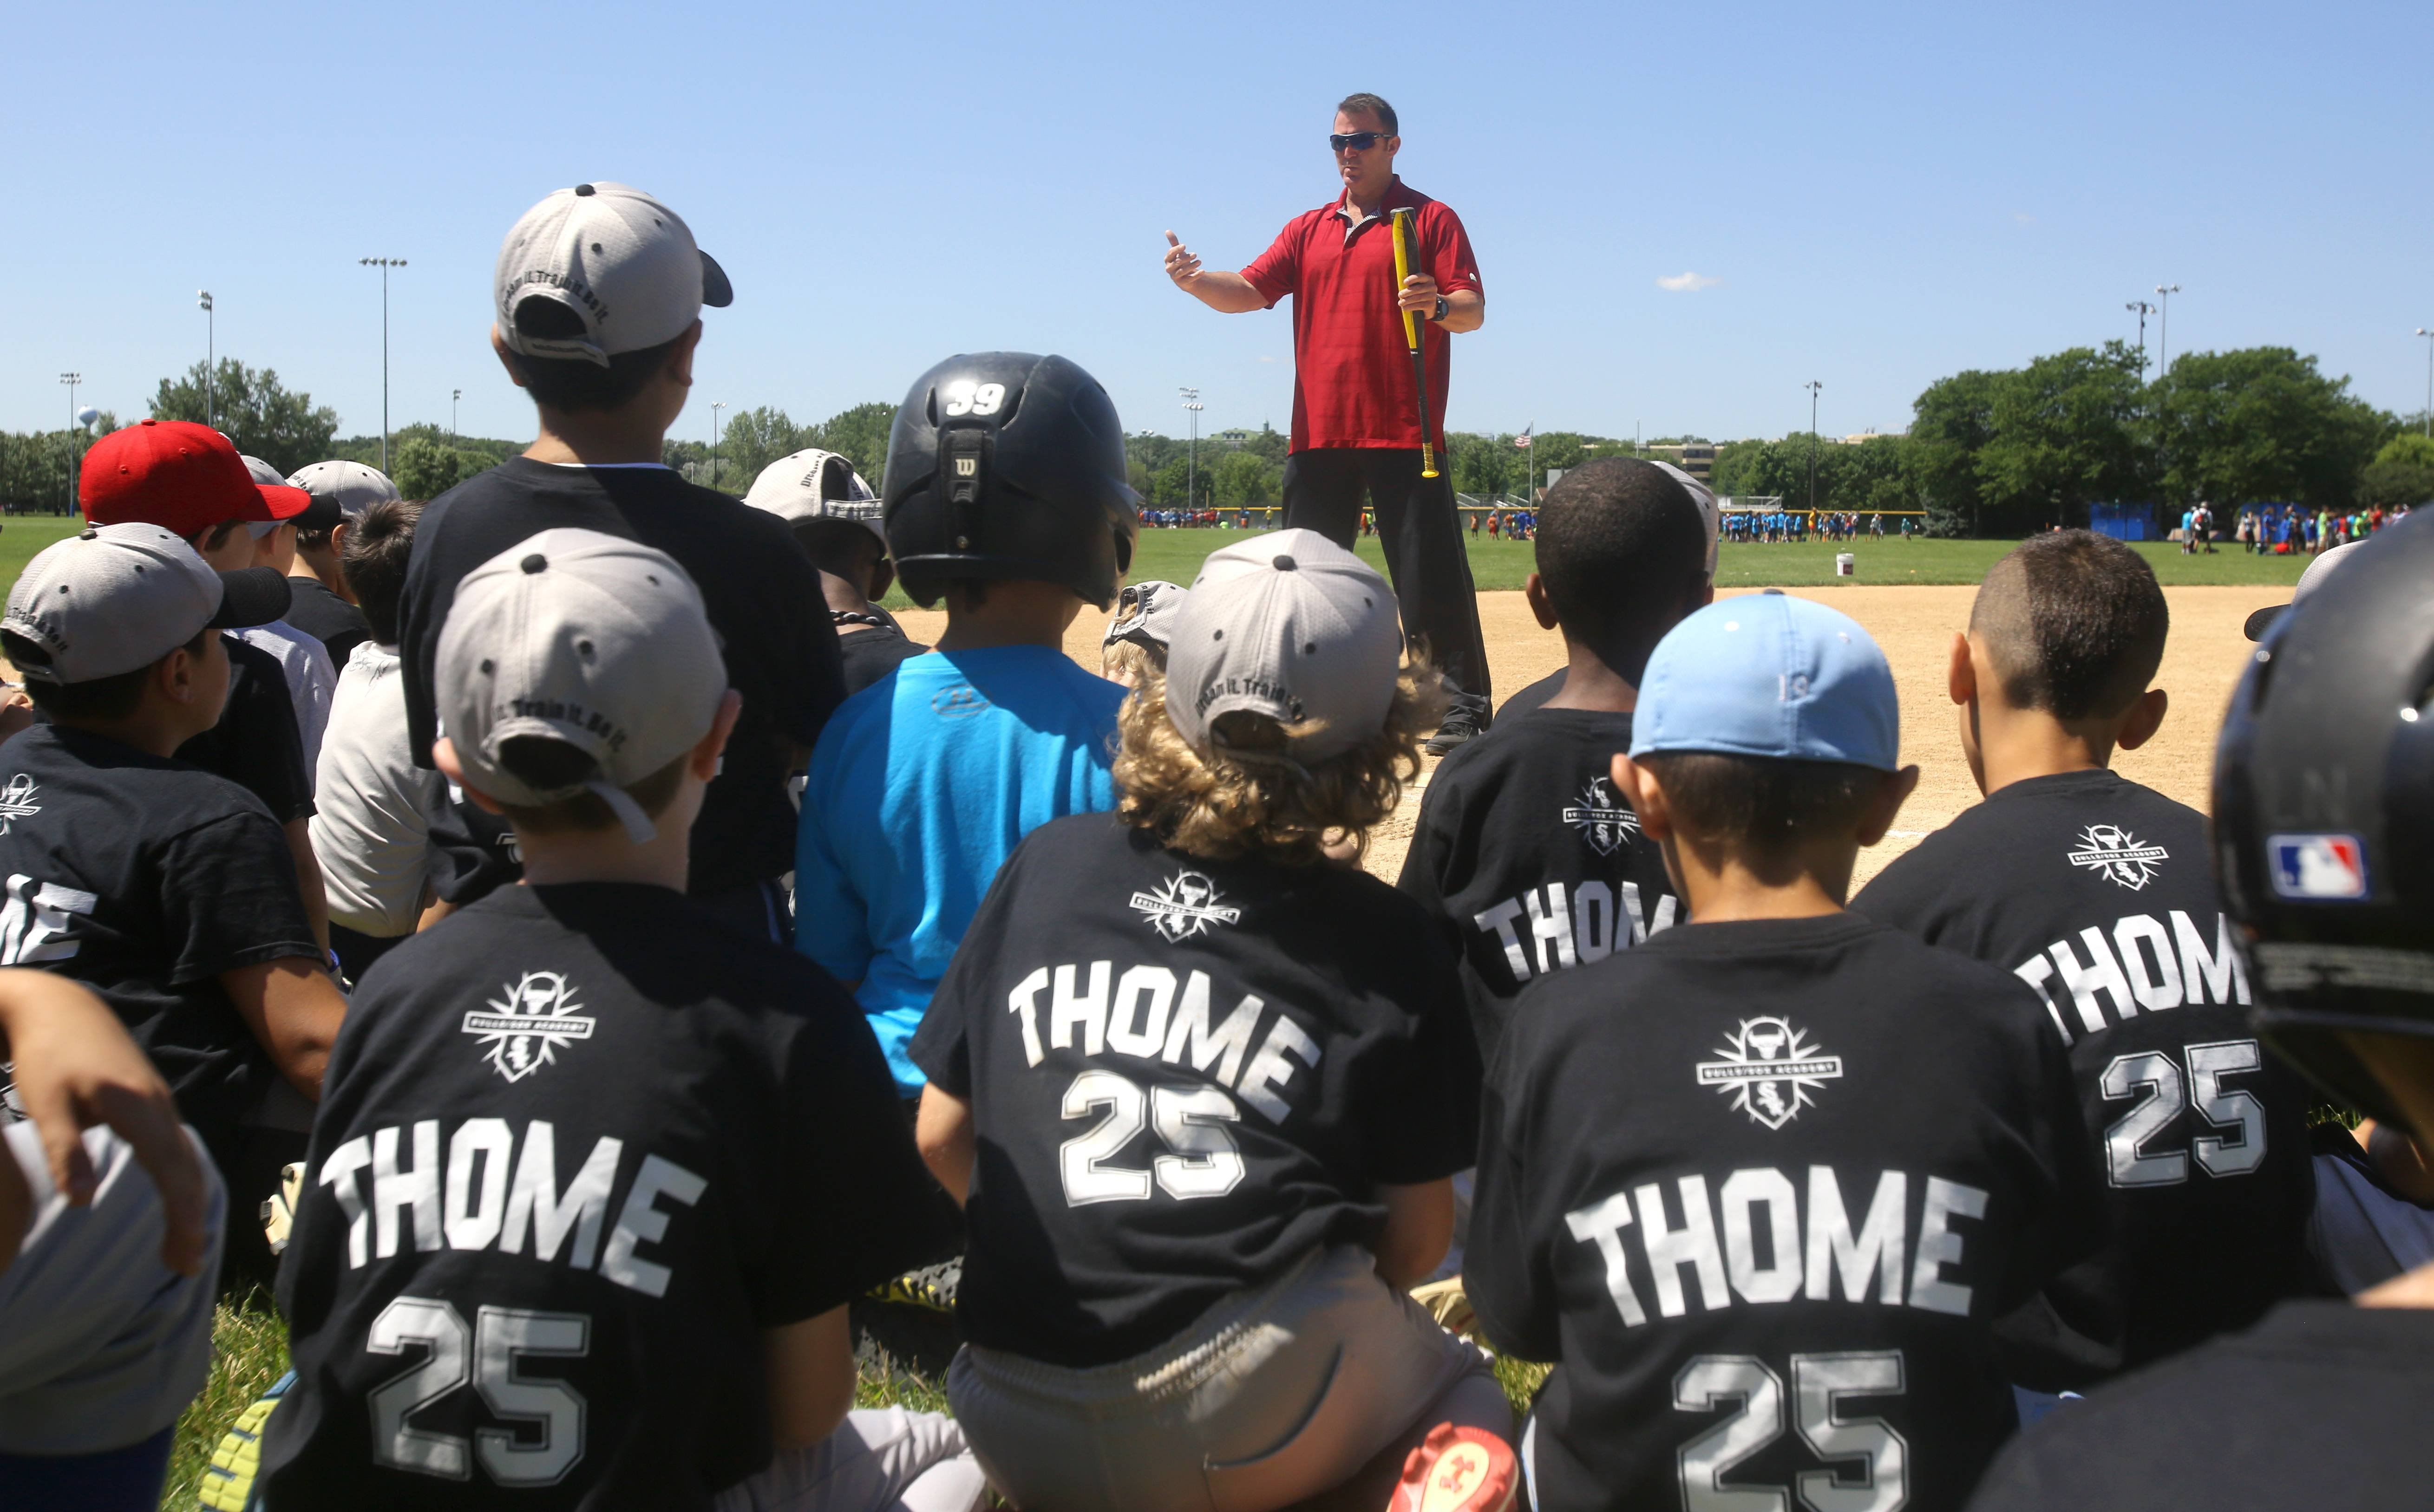 Former major leaguer Jim Thome speaks about a balanced batting stance to participants attending the White Sox Silver Slugger Camp for boys and girls at Lisle's Community Park.